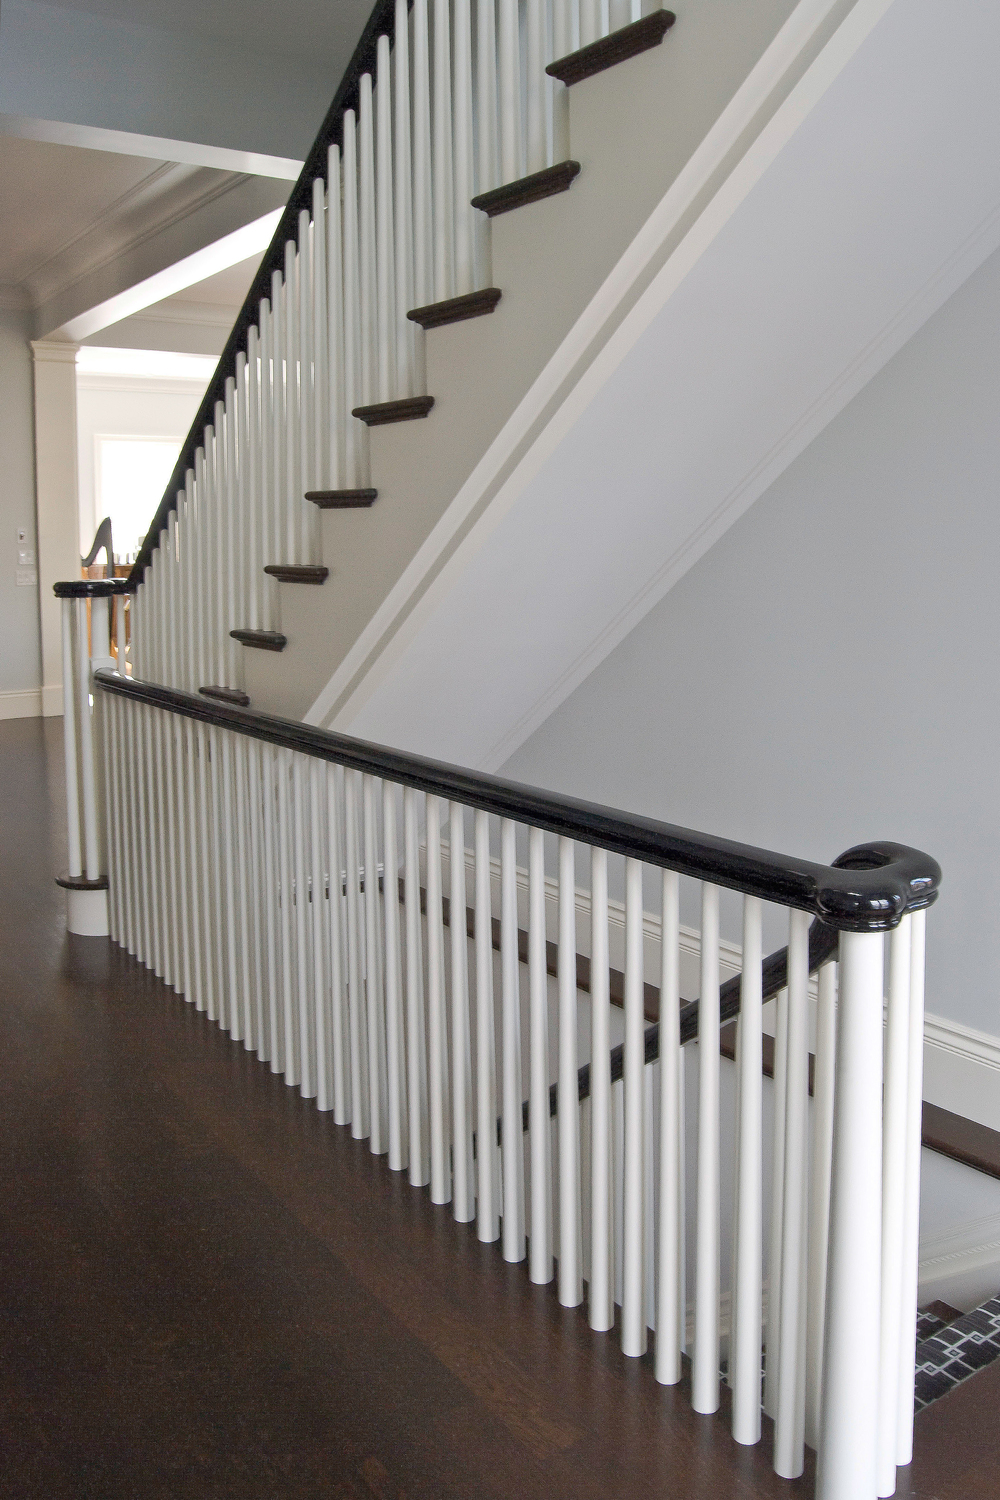 20100128-Interior stairs 2.jpg